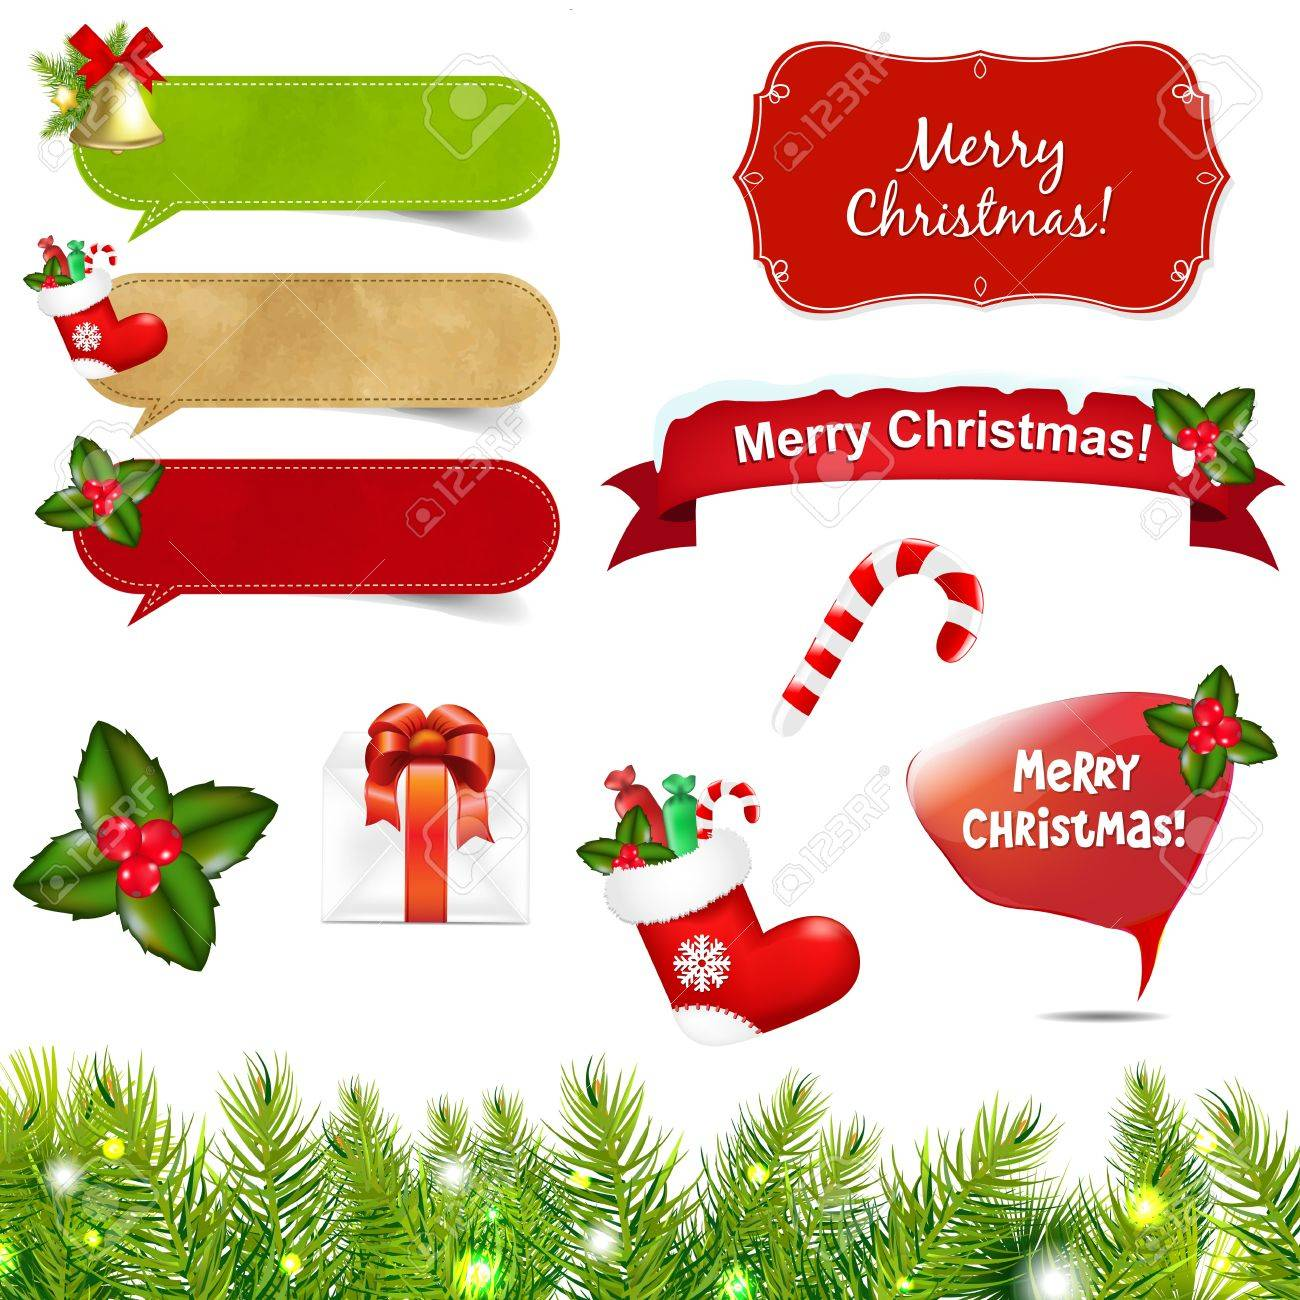 Big Christmas Icons Set With Border With Gradient Mesh, Isolated On White Background, Illustration Stock Vector - 16434704